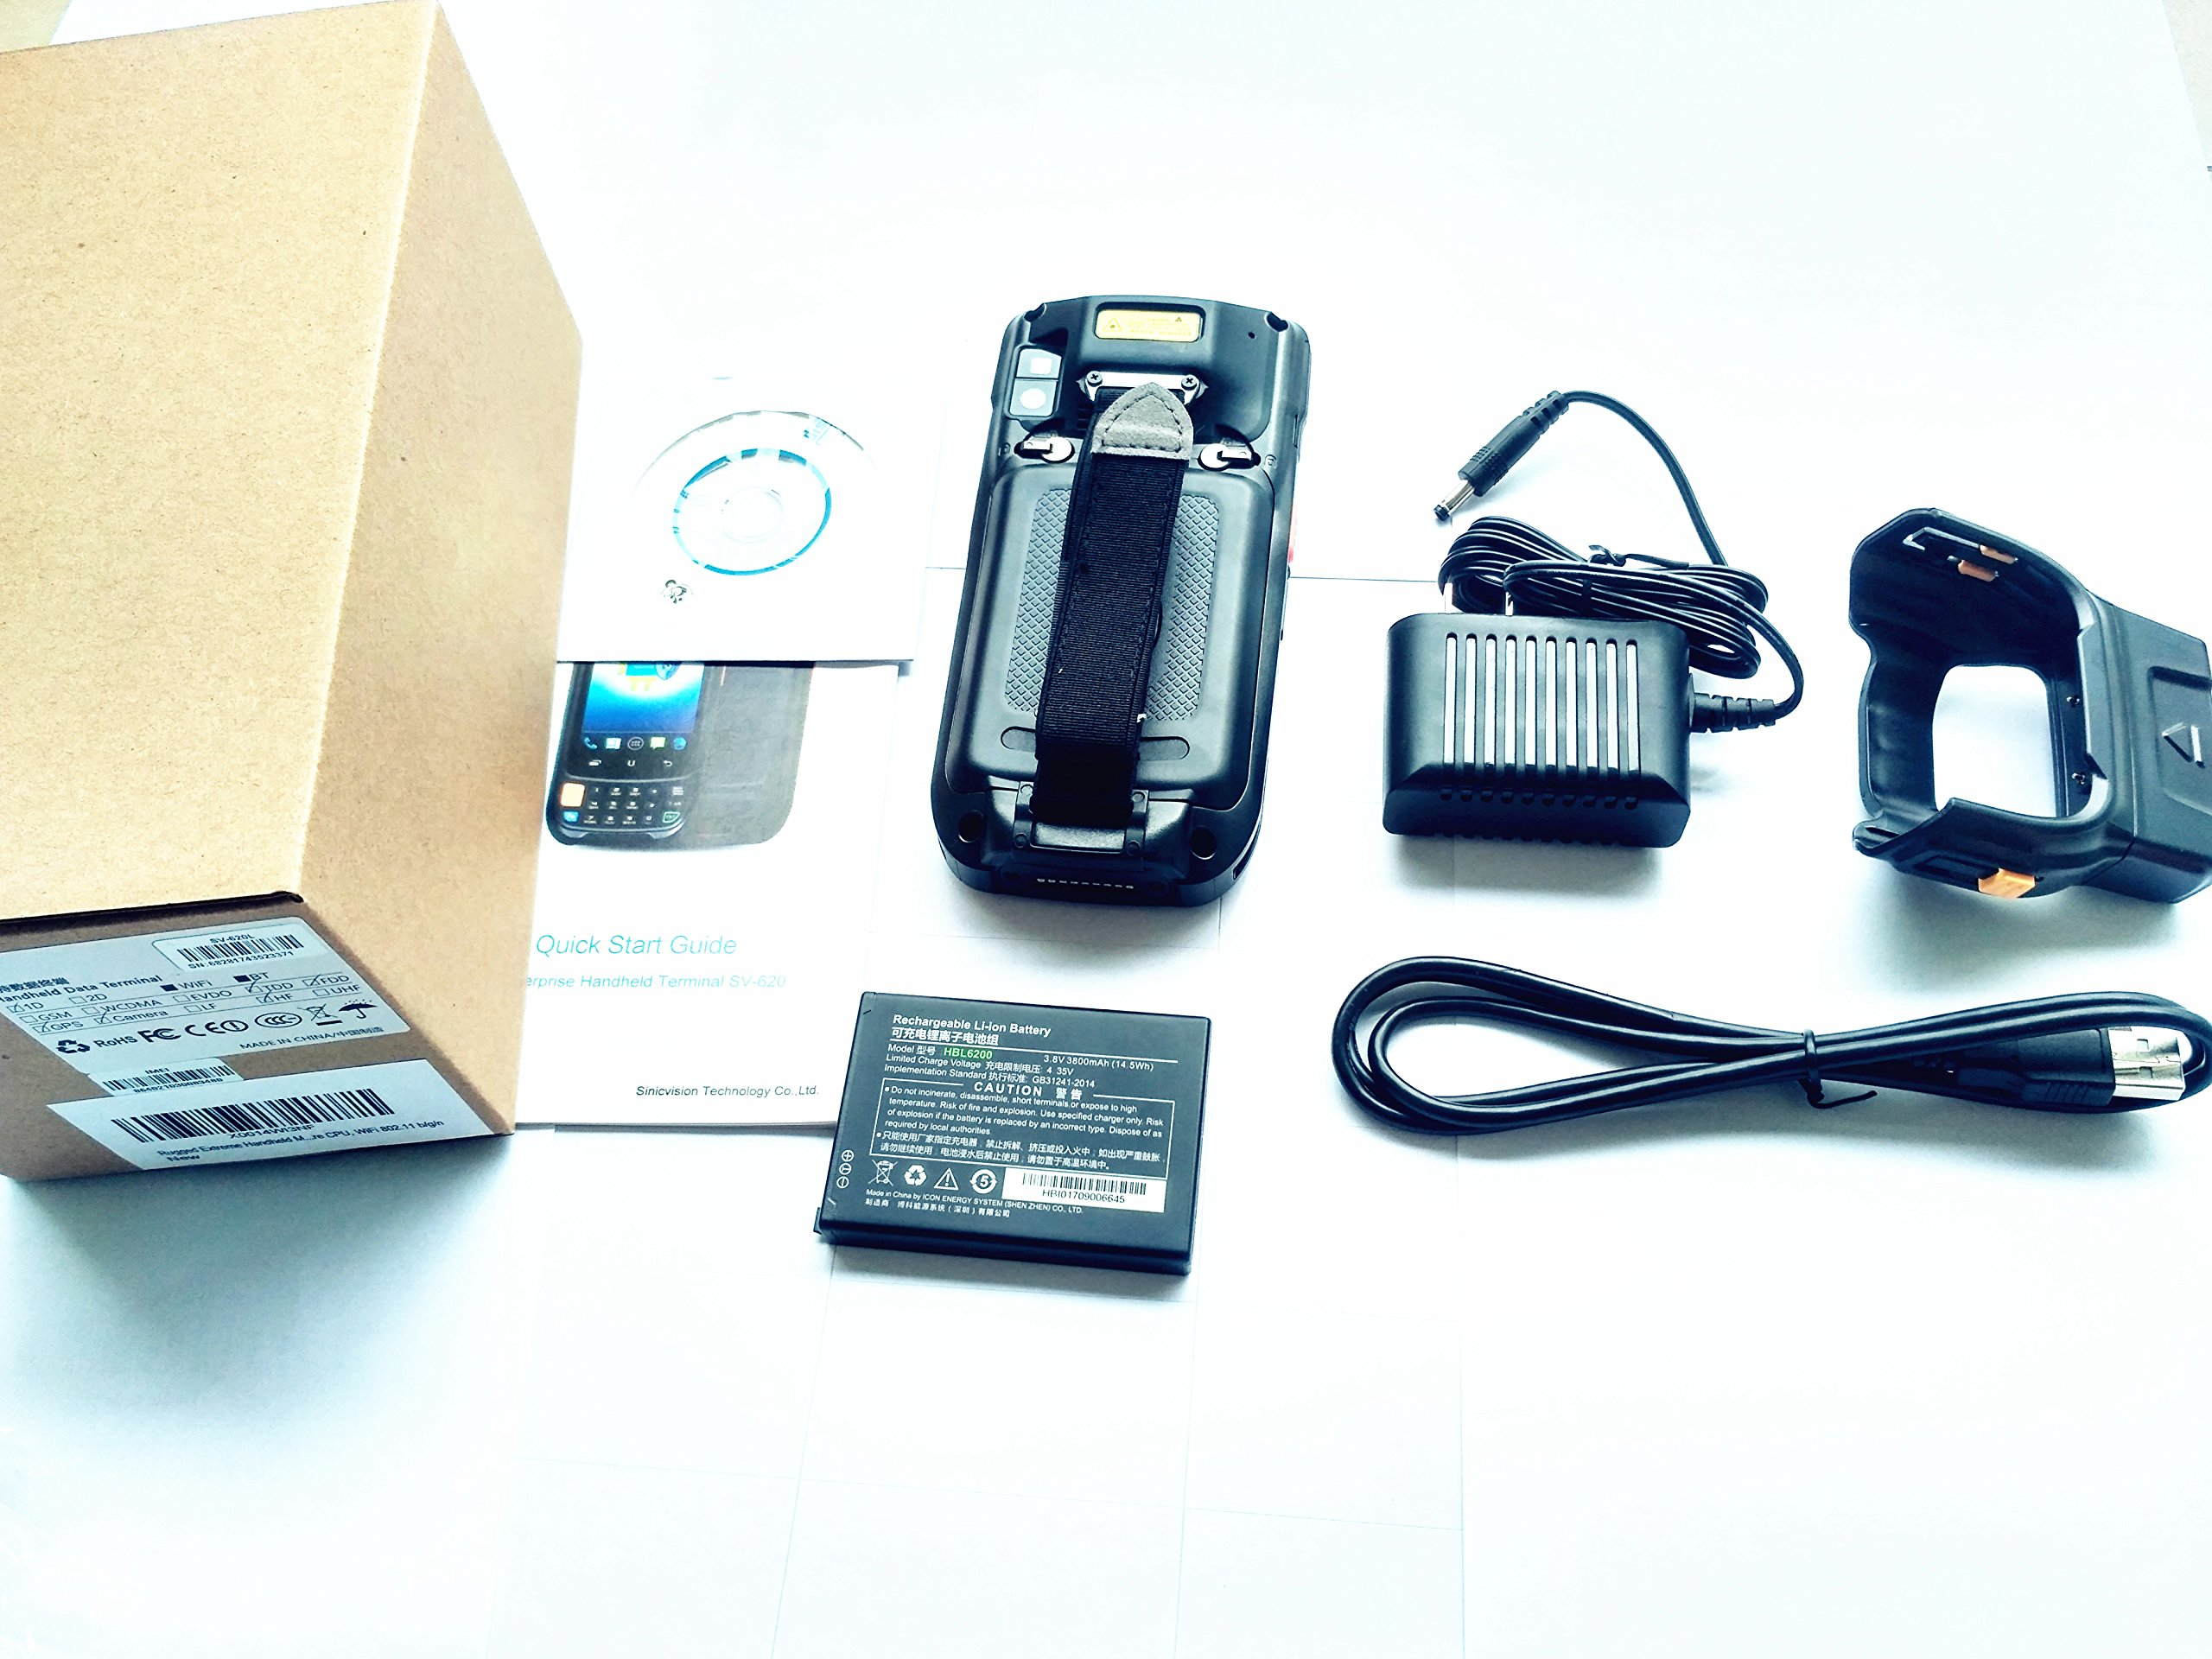 Rugged Extreme Handheld Mobile Computers, Data Terminal With Motorola Symbol 1D Laser Barcode Scanner / GPS / Camera,  Android 5.1 OS, Qualcomm Quad Core CPU, WiFi 802.11 b/g/n by Cruiser (Image #7)